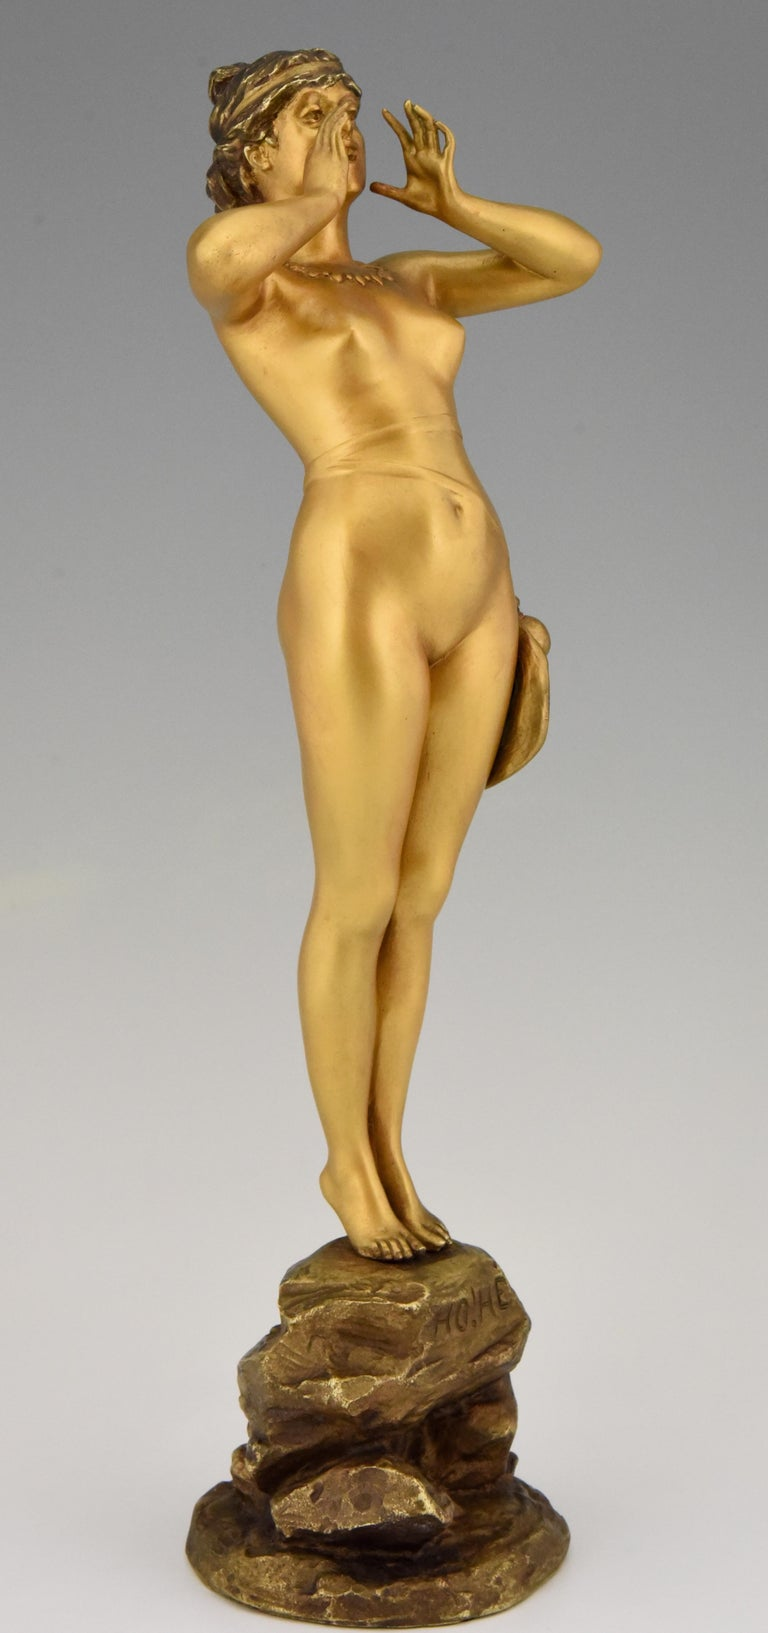 Art Nouveau Bronze Sculpture Calling Nude Lady Alfred Grevin and Friedrich Beer 1